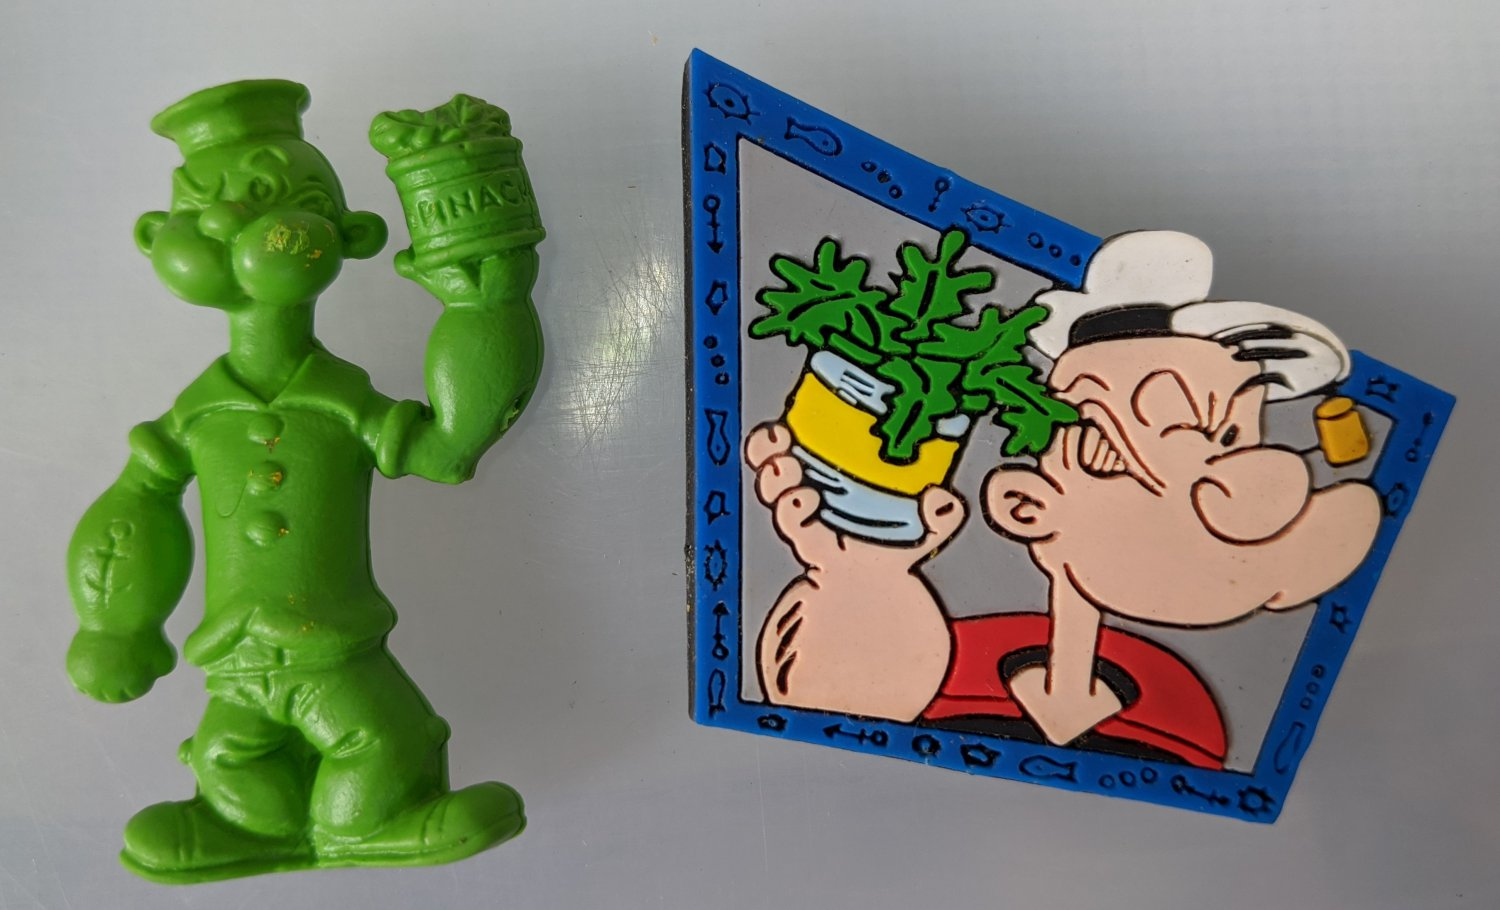 Popeye The Sailor Rubber Mini Figure and Magnet